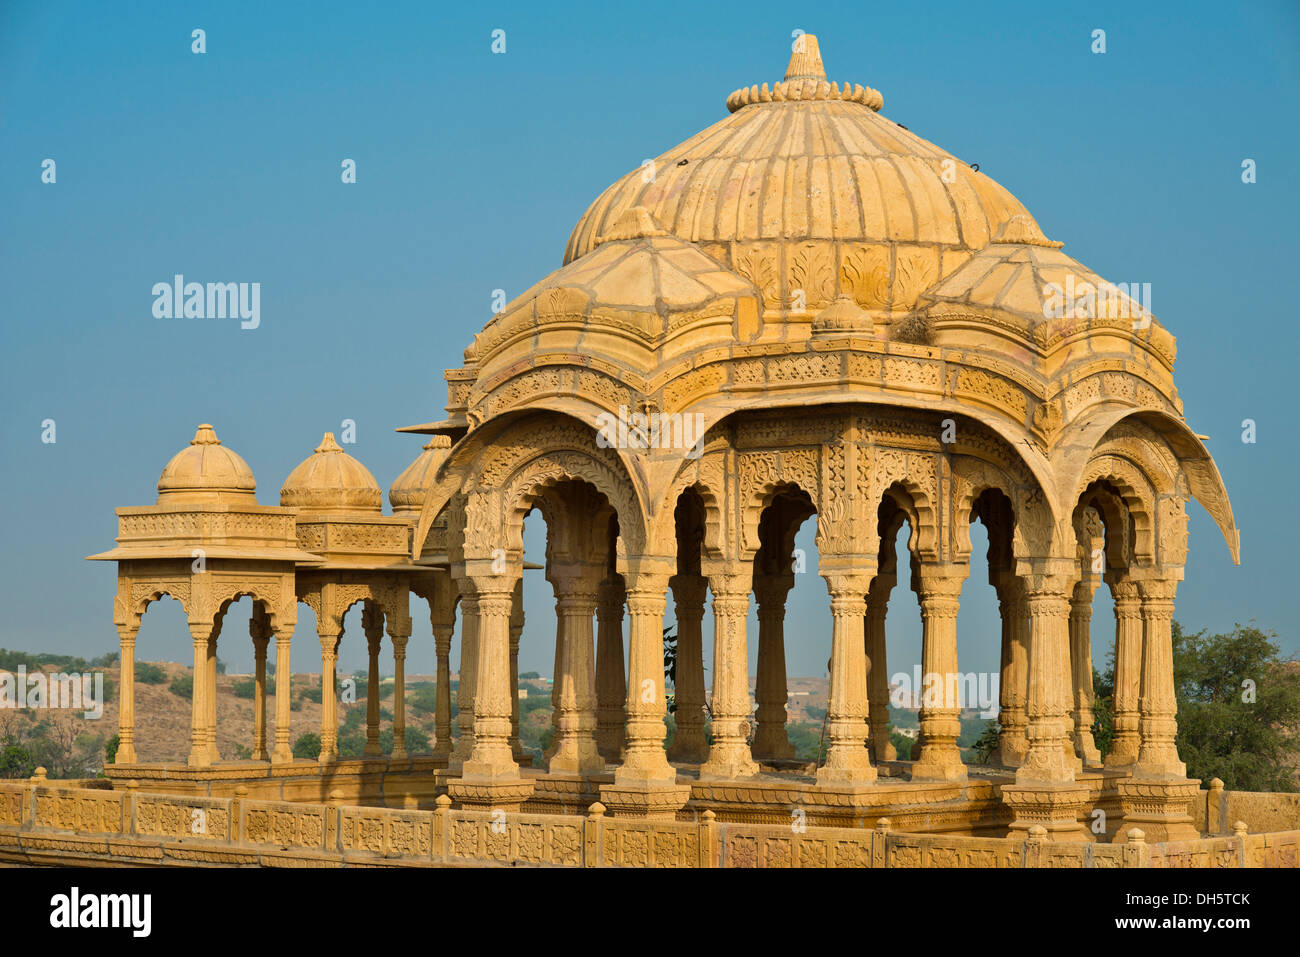 Cenotaph, old burial site of the rulers of Jaisalmer, Bada Bagh, Jaisalmer, Rajasthan, India Stock Photo